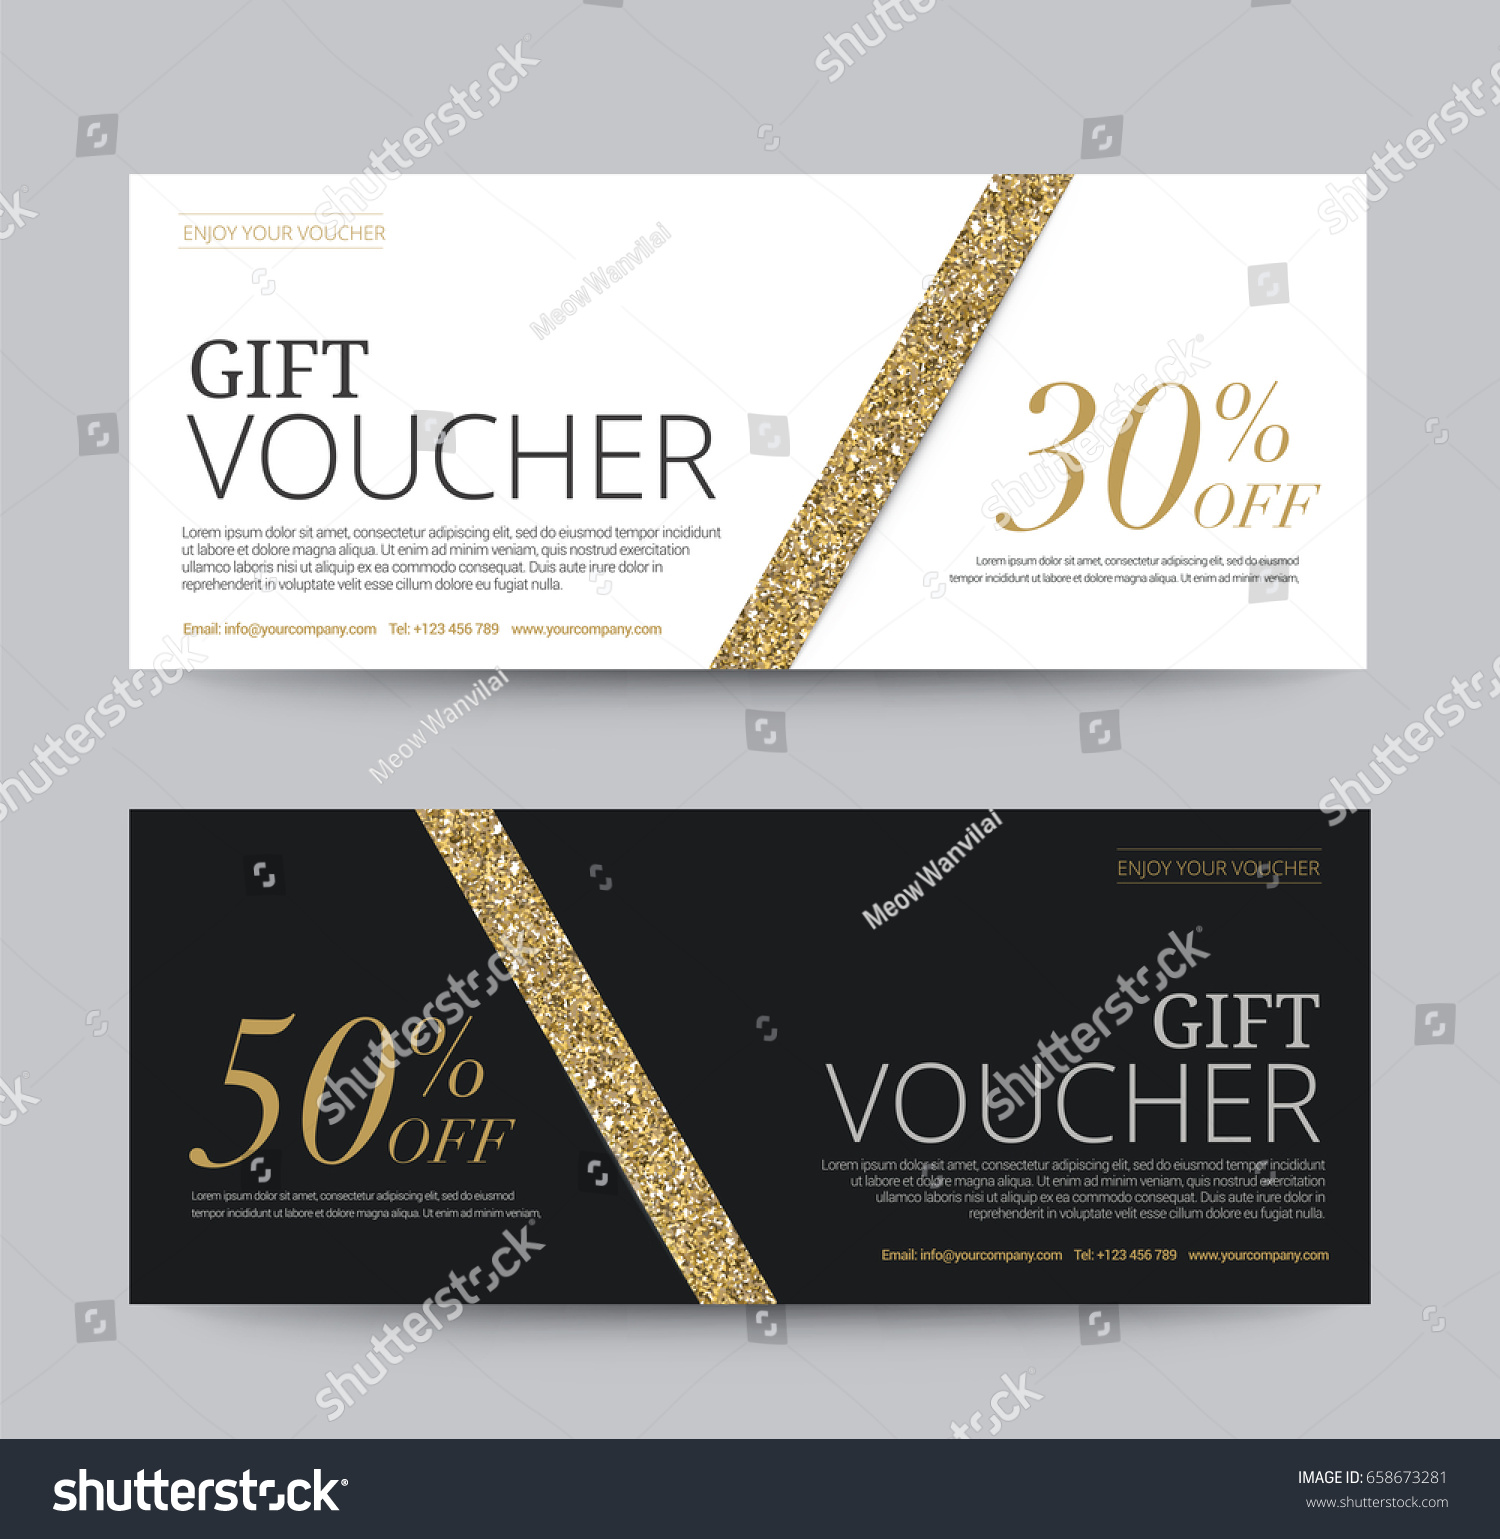 Gift Voucher Template Promotion Sale Discount Stock Vector (Royalty ...